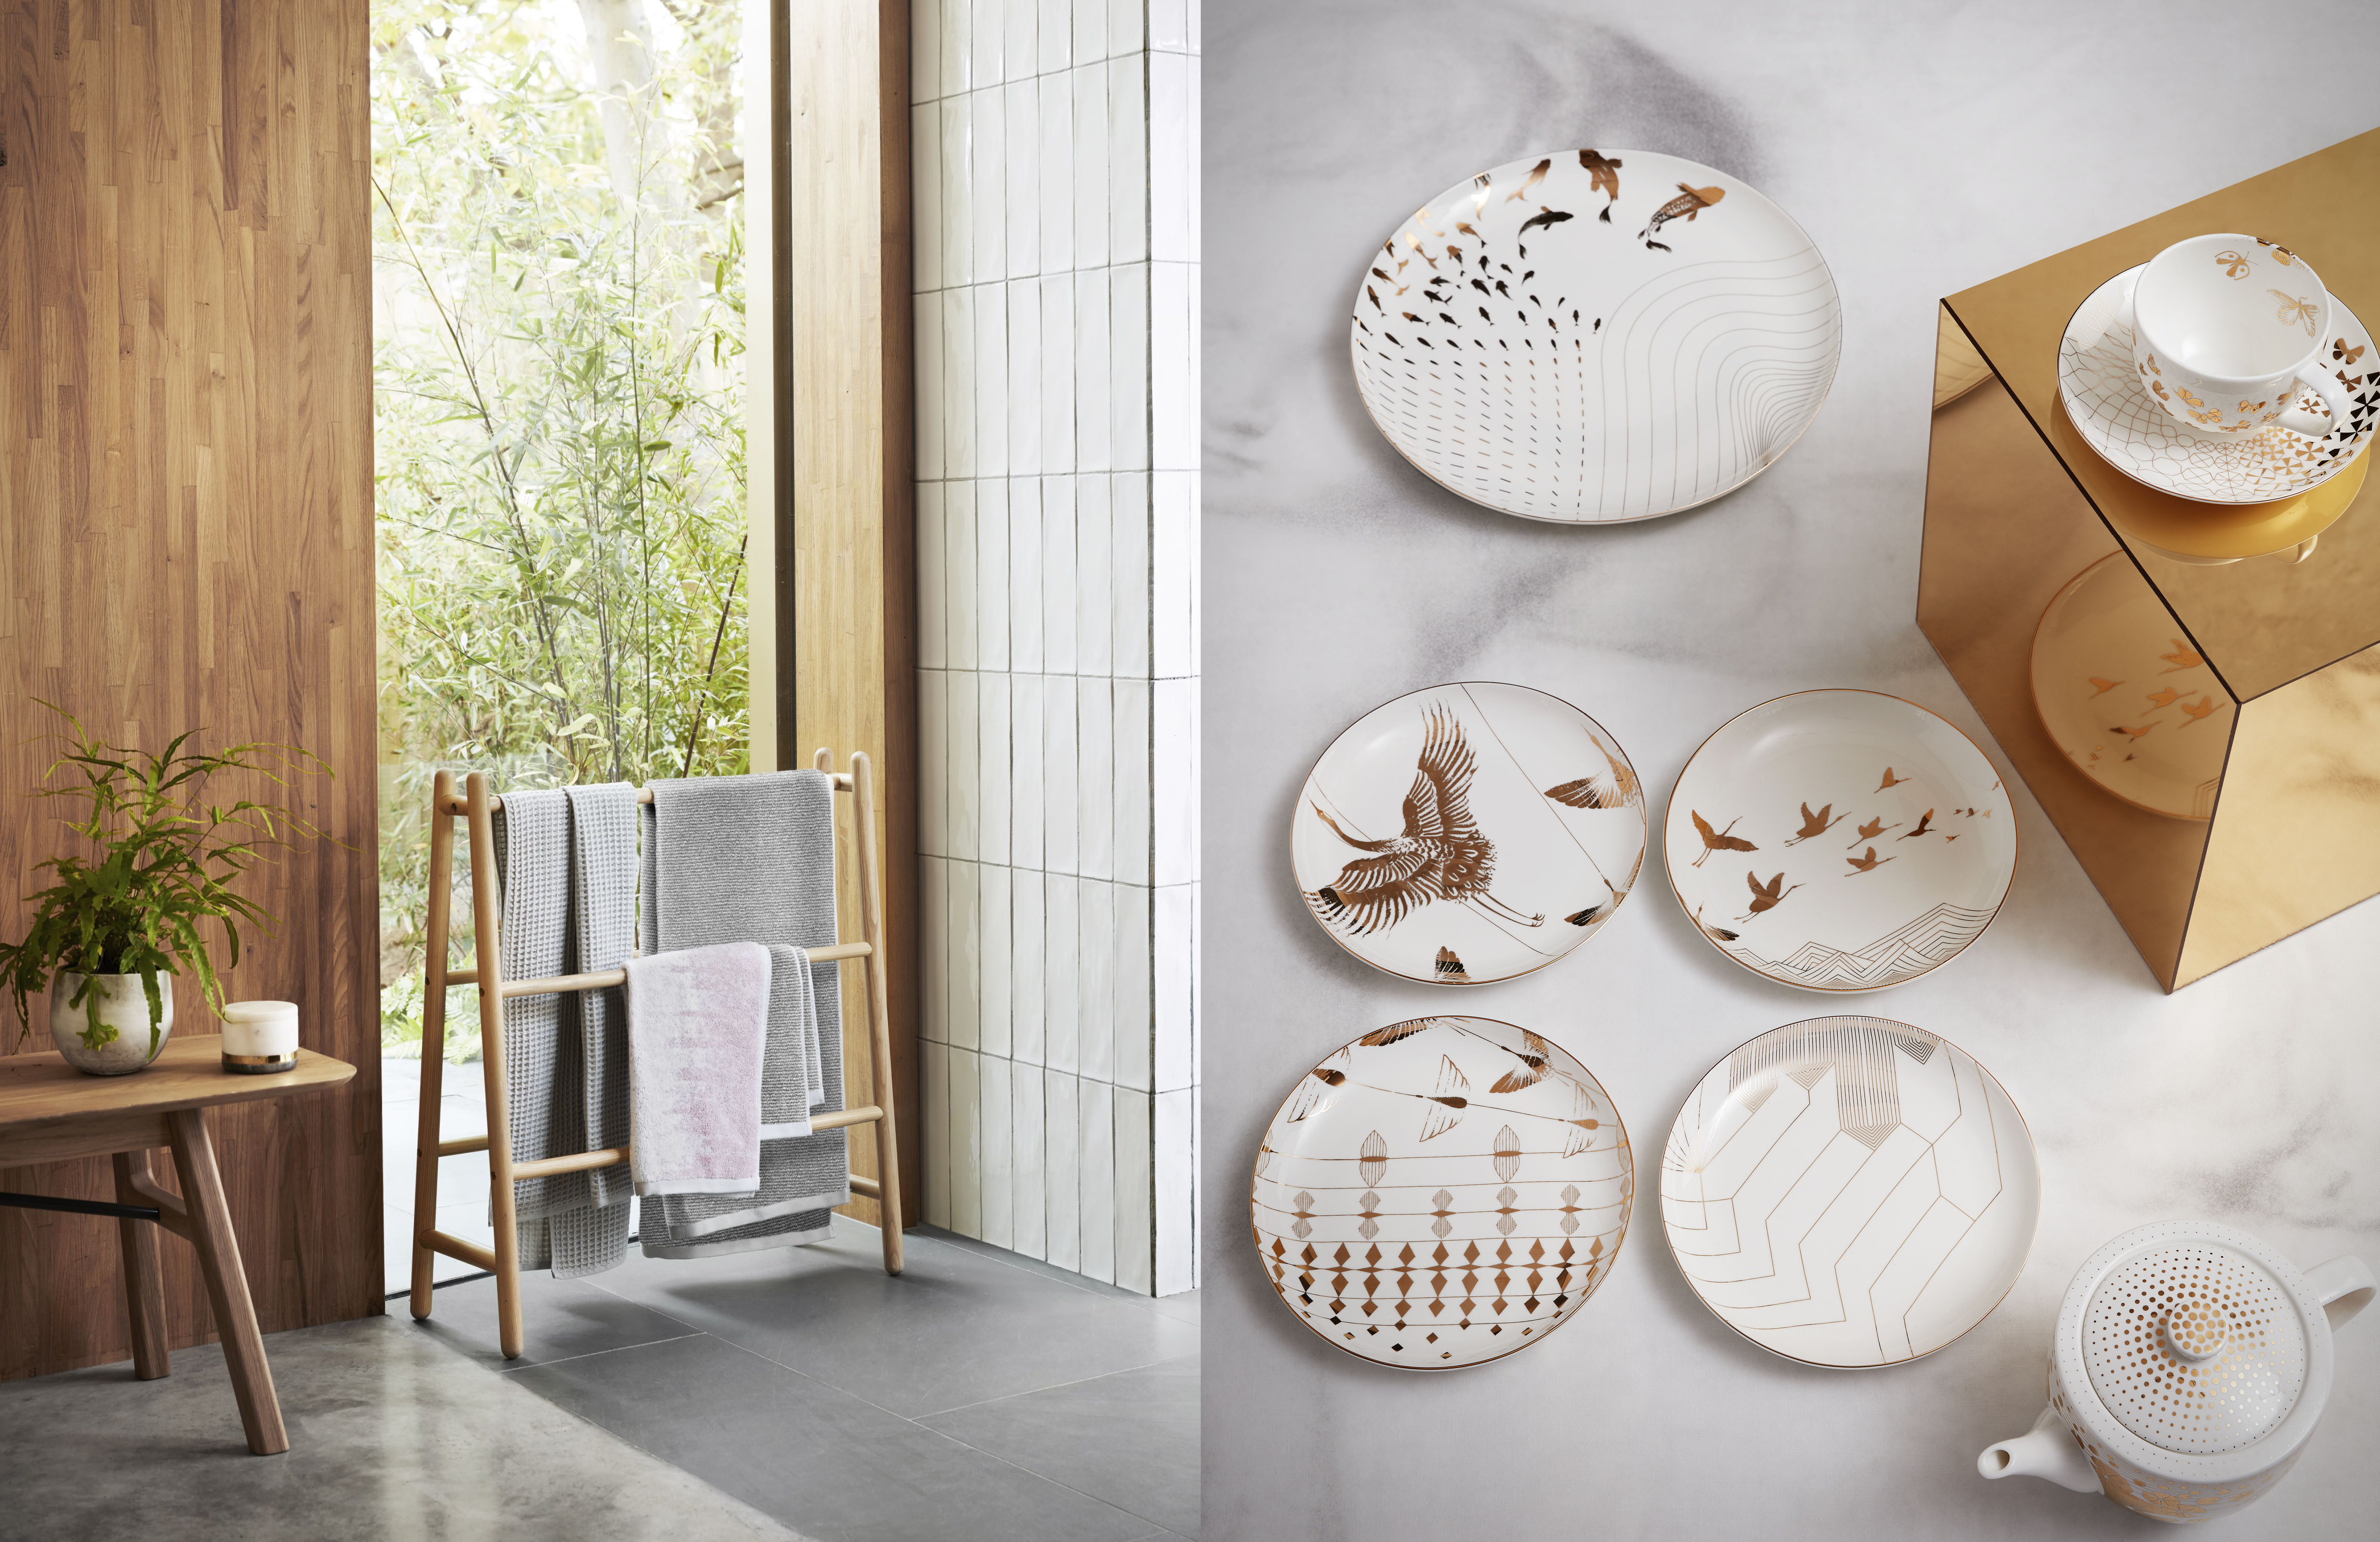 John Lewis x Japonisme. 'Yama' side plates, £65 for a set of 4; Bathroom Towel Horse, £90. John Lewis